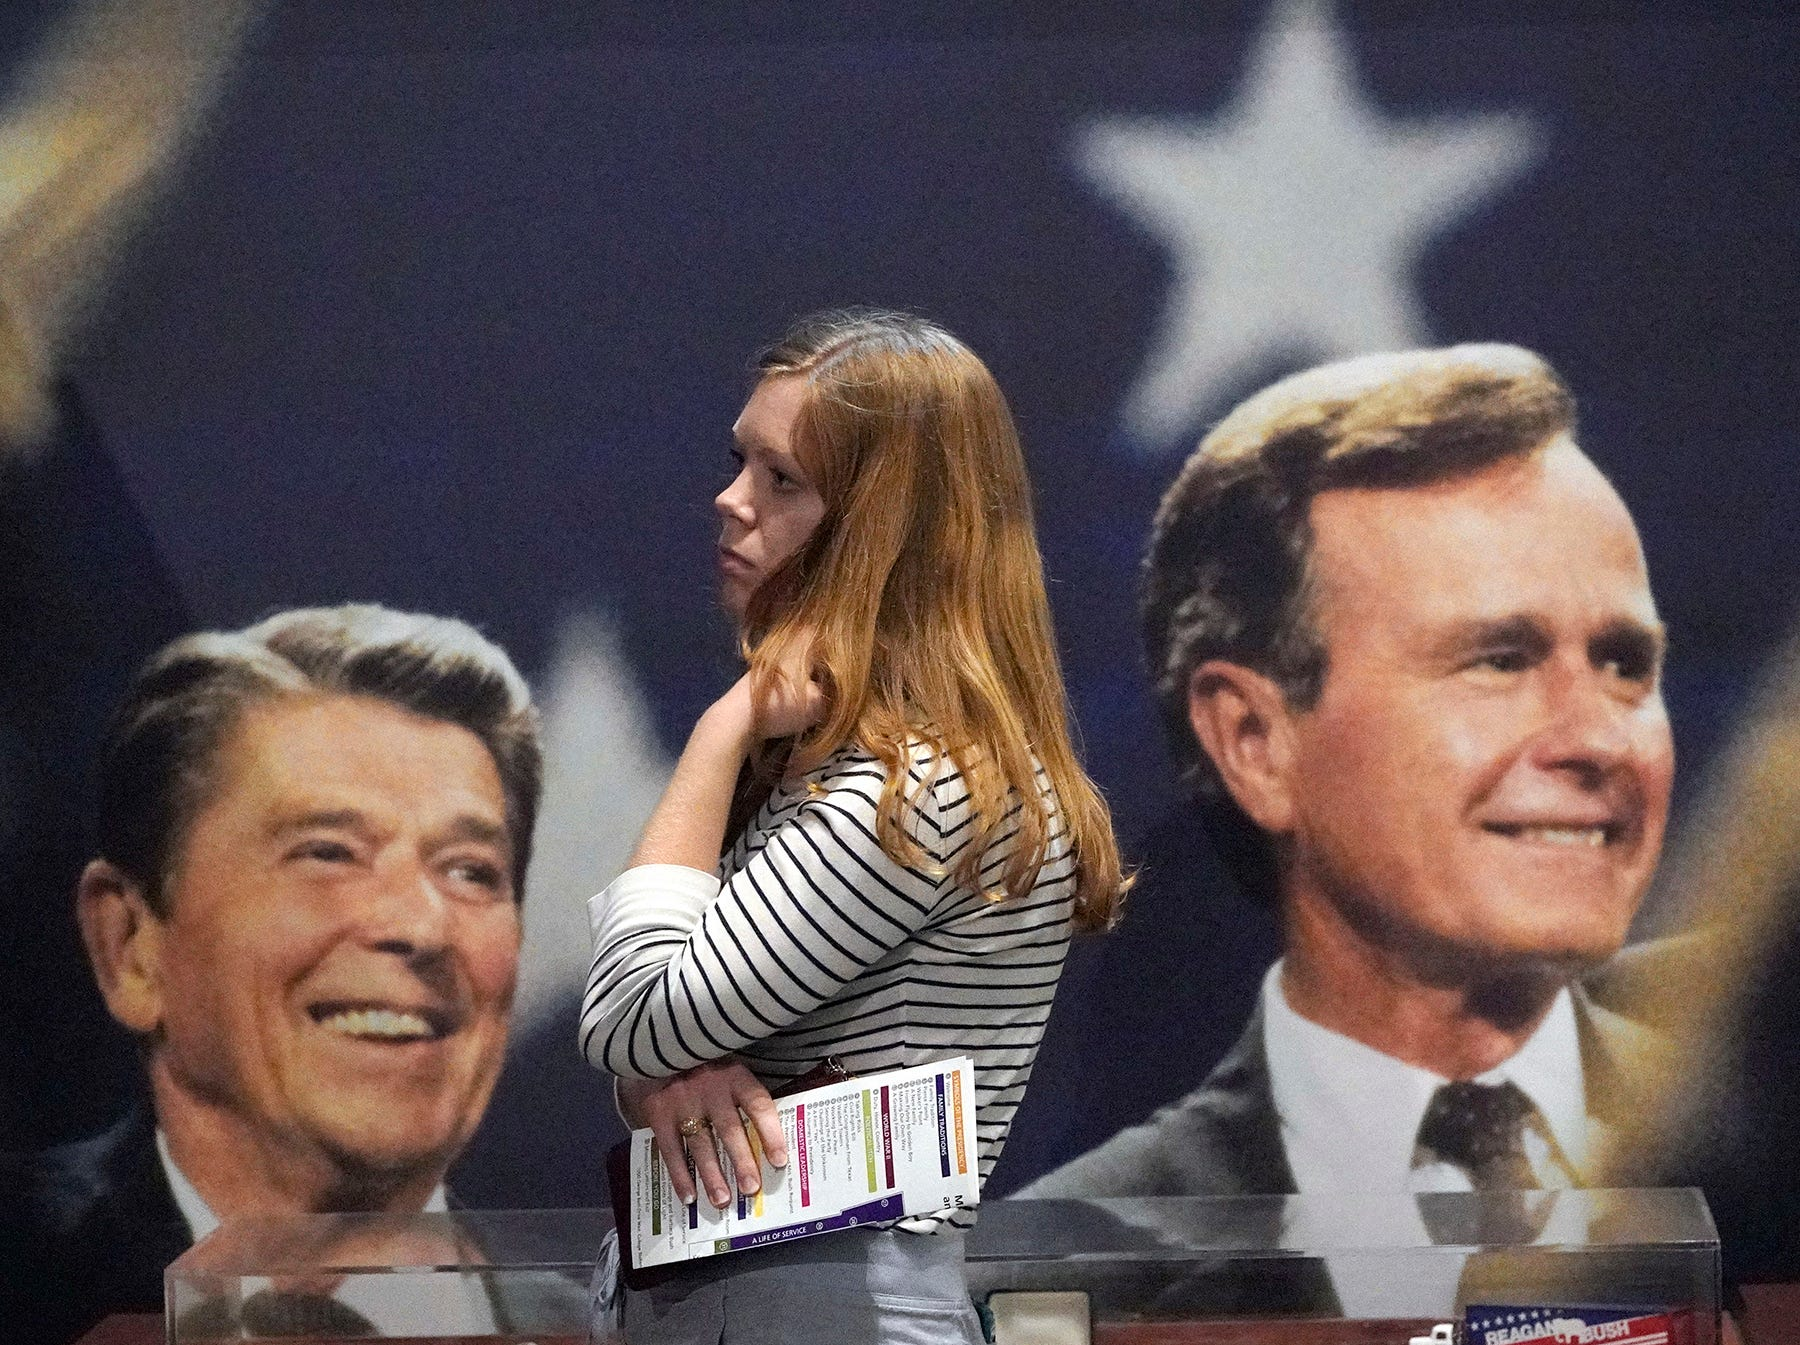 Caroline Cyboran, of Kingwood, Texas, looks at an exhibit while visting the George H.W. Bush Presidential Library and Museum Saturday, Dec. 1, 2018, in College Station. Bush has died at age 94. Family spokesman Jim McGrath says Bush died shortly after 10 p.m. Friday, Nov. 30, 2018, about eight months after the death of his wife, Barbara Bush.